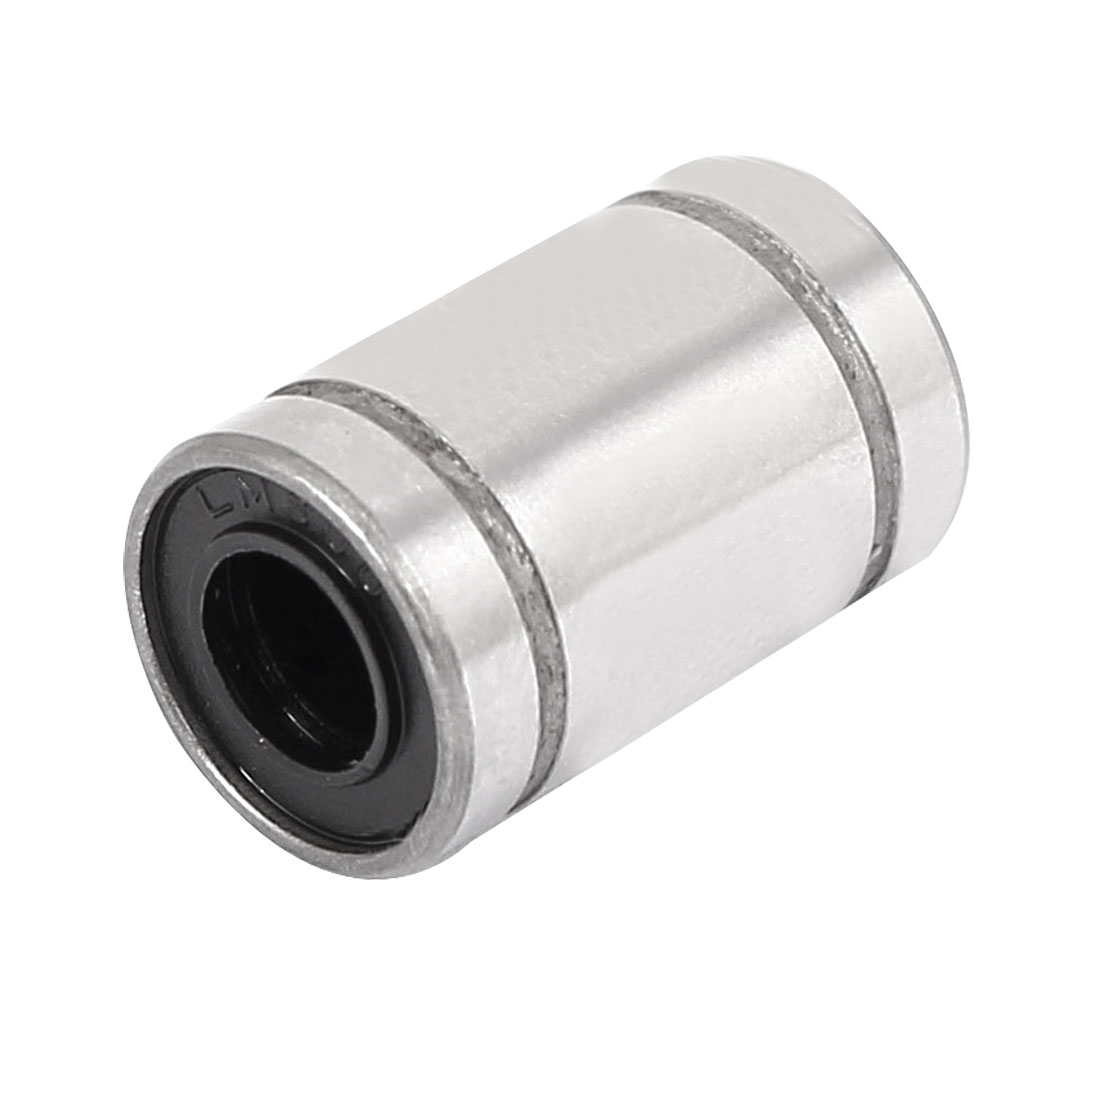 Double Side Sealed Linear Motion Ball Bearing 6mm x 12mm x 19mm